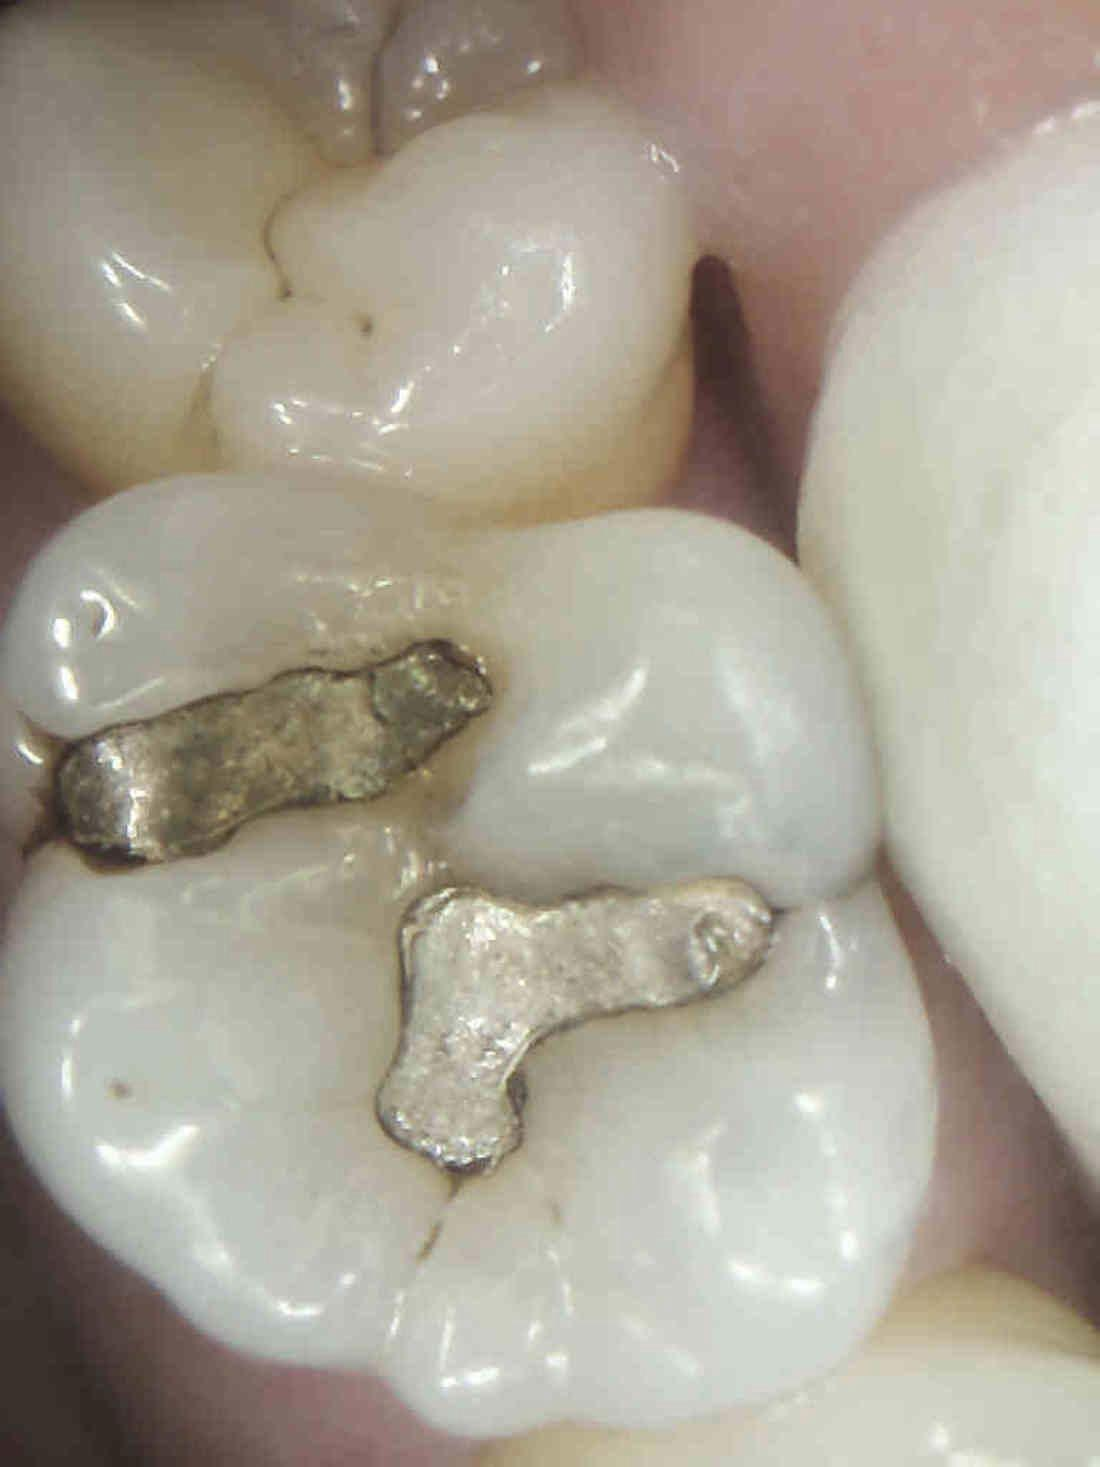 Silver filling, cracked filling, open margins on existing filling | tooth colored fillings humble